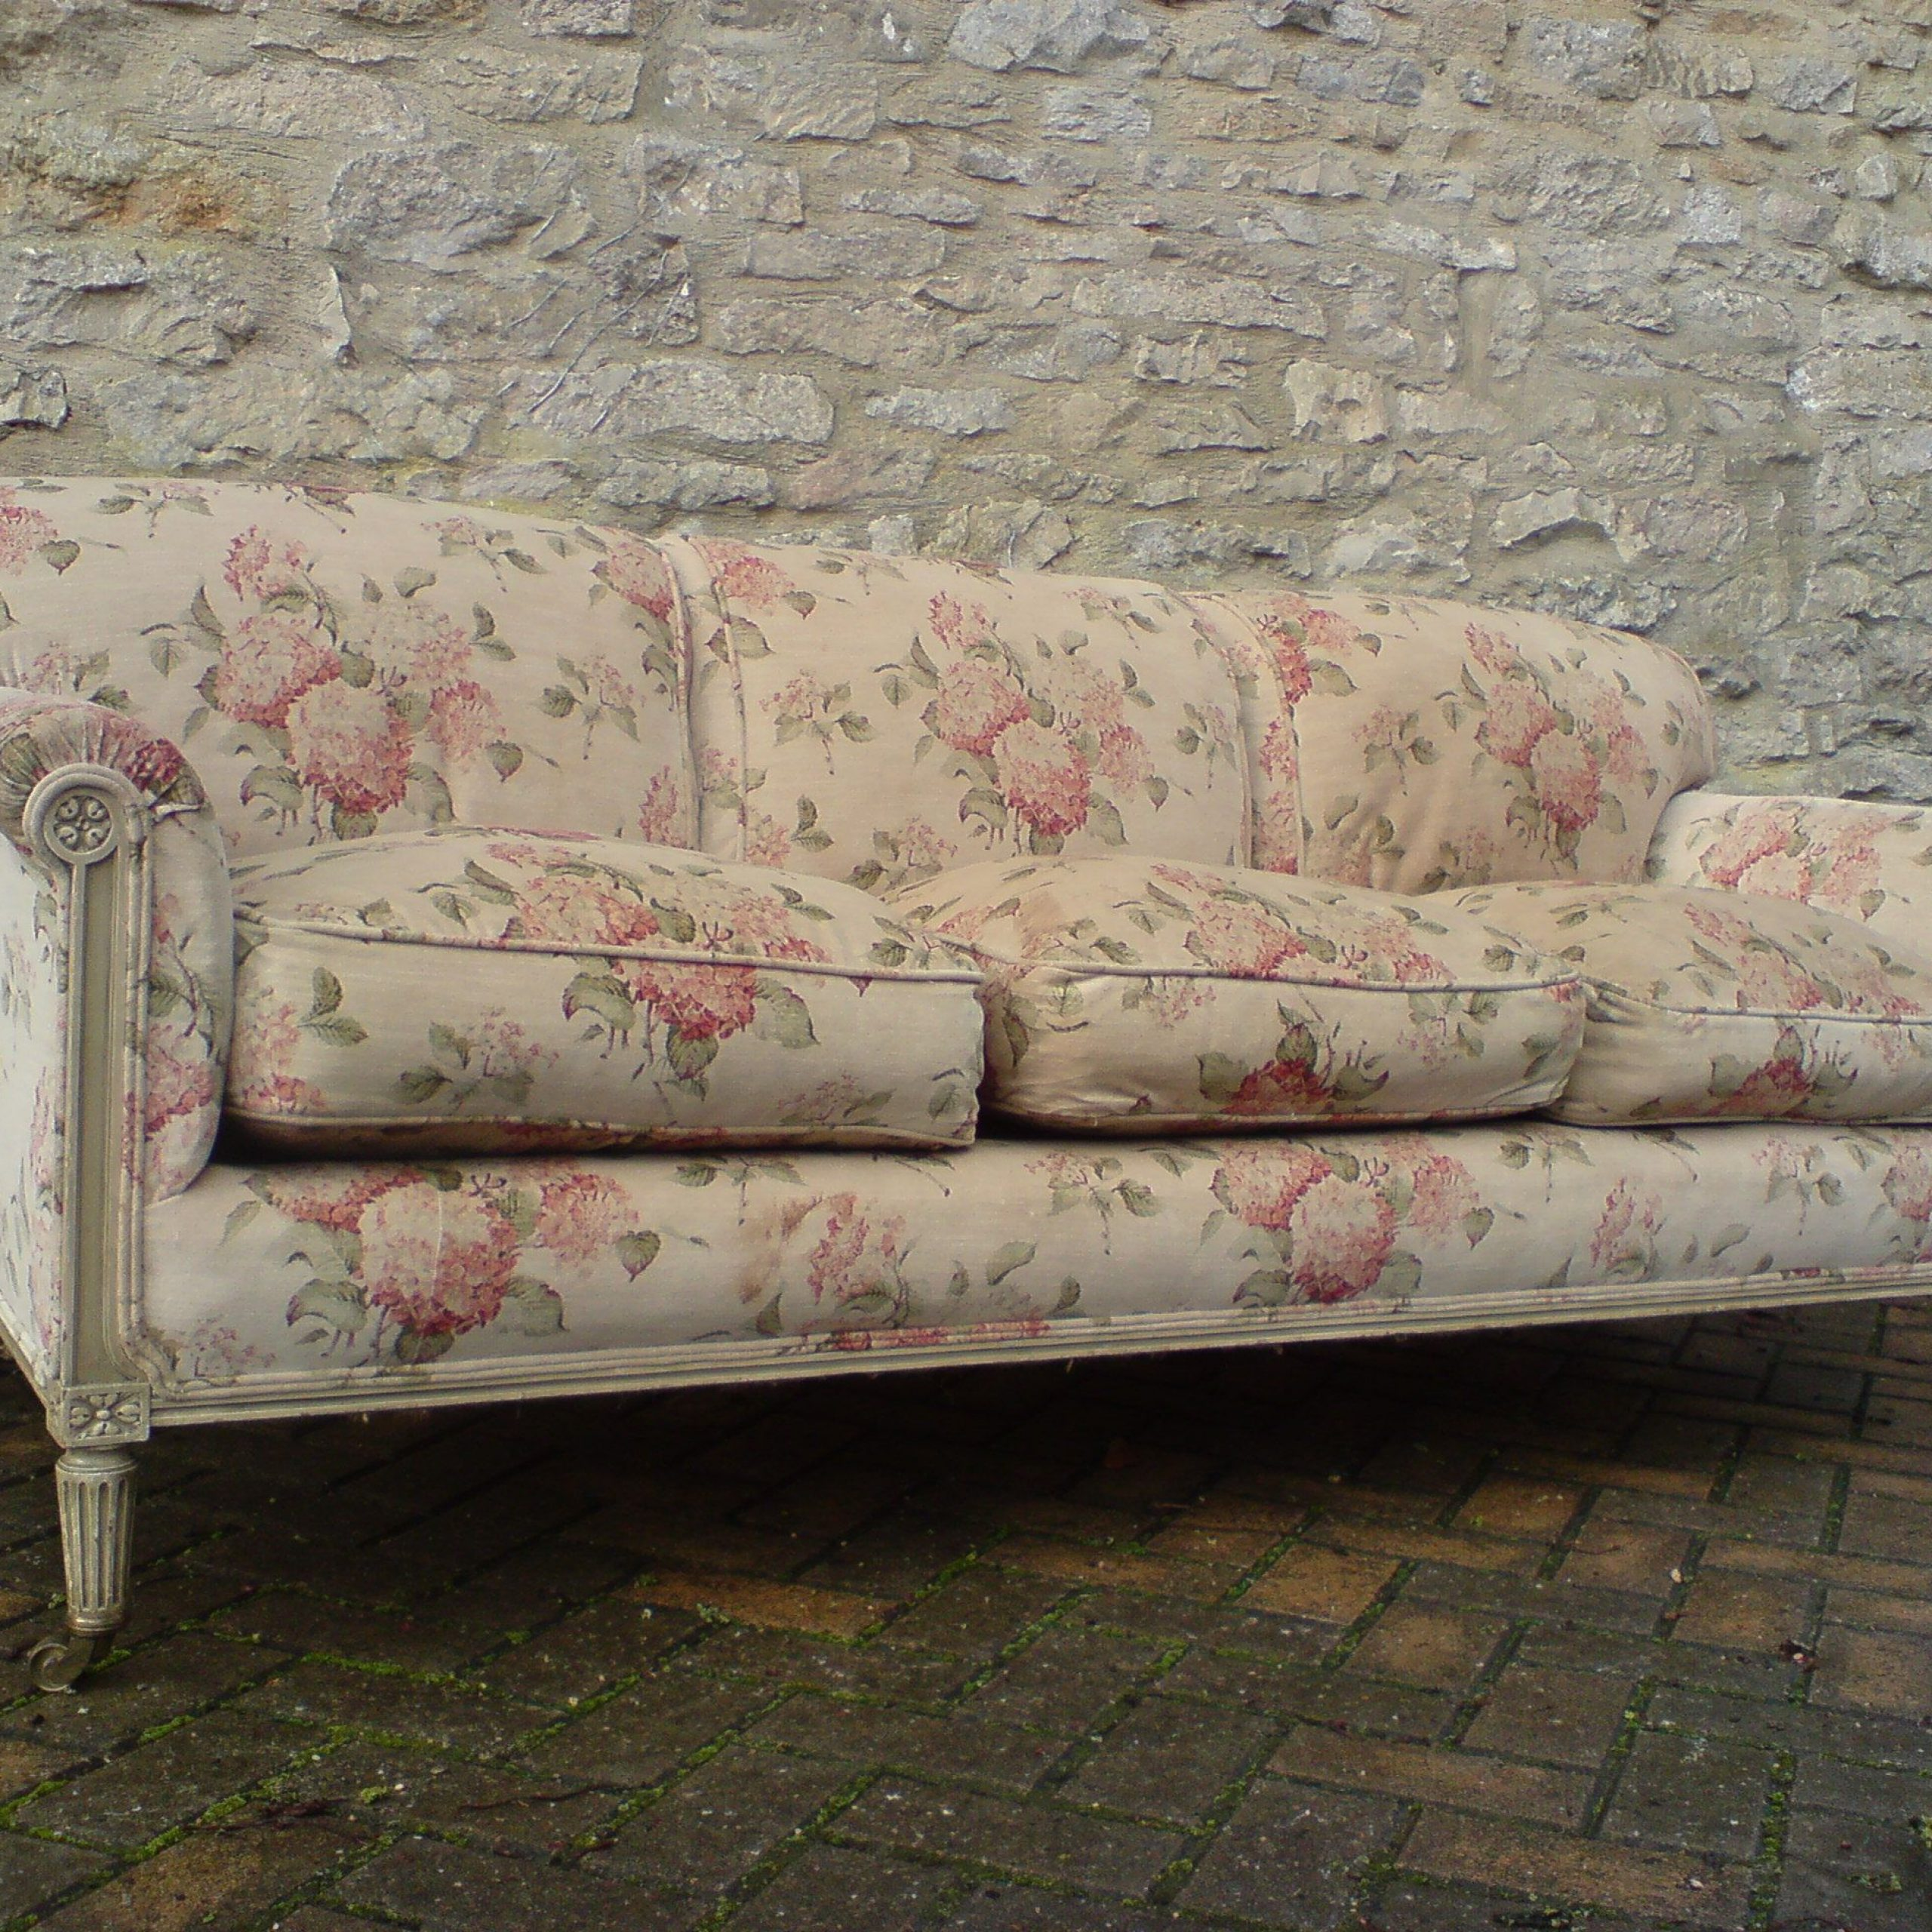 1870 1890 Antique Howard & Sons Sofa   Cottage Style Sofa Inside Shabby Chic Sofas (View 3 of 15)